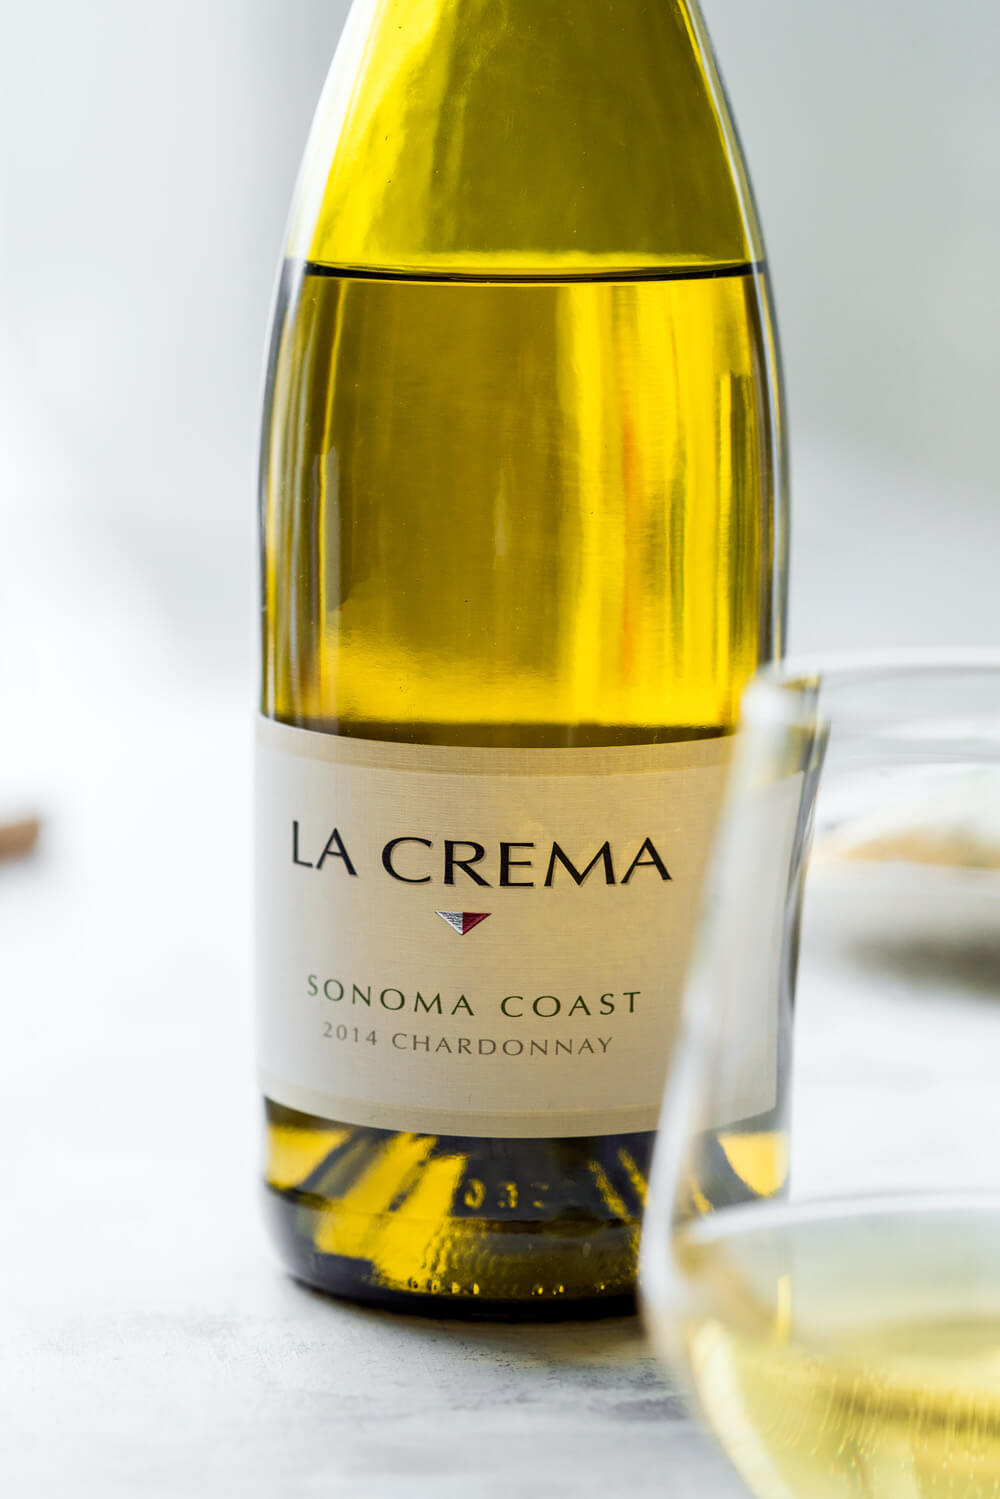 La Crema Sonoma Coast Chardonnay to pair with Chorizo Shawarma Crepes with Lemon Tahini